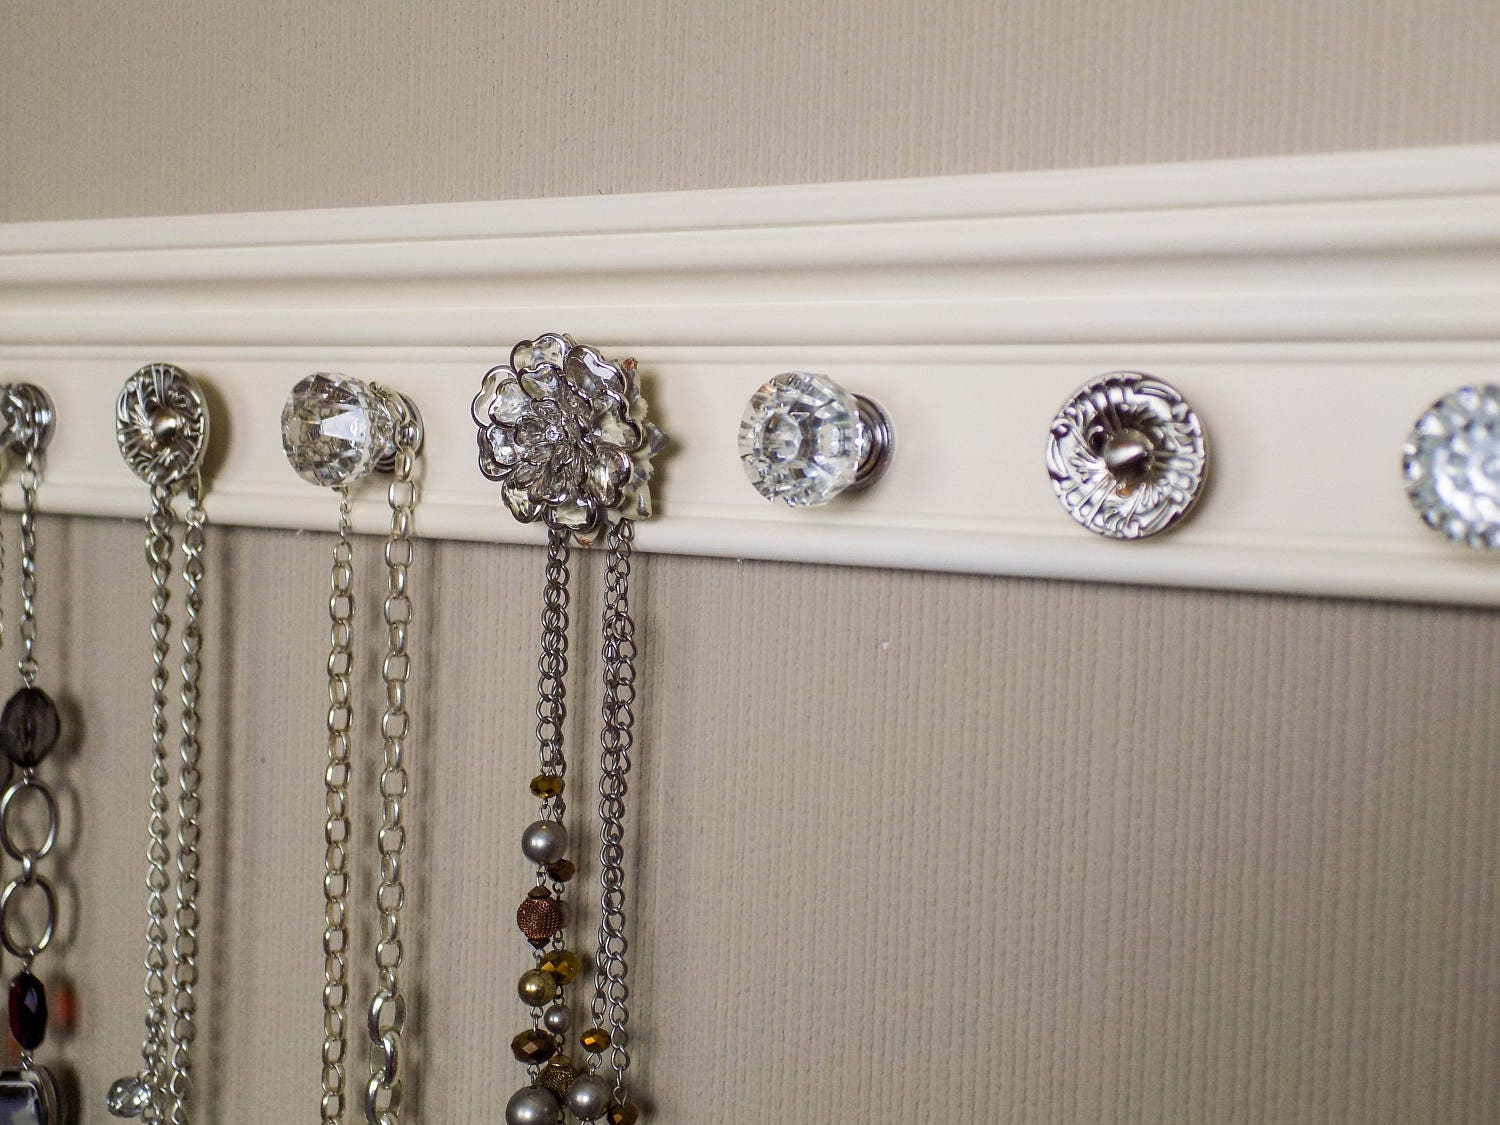 jewelry holder this wall necklace organizer has 7 decorative cabinet knobs featuring large rose center knob - Decorative Cabinet Knobs